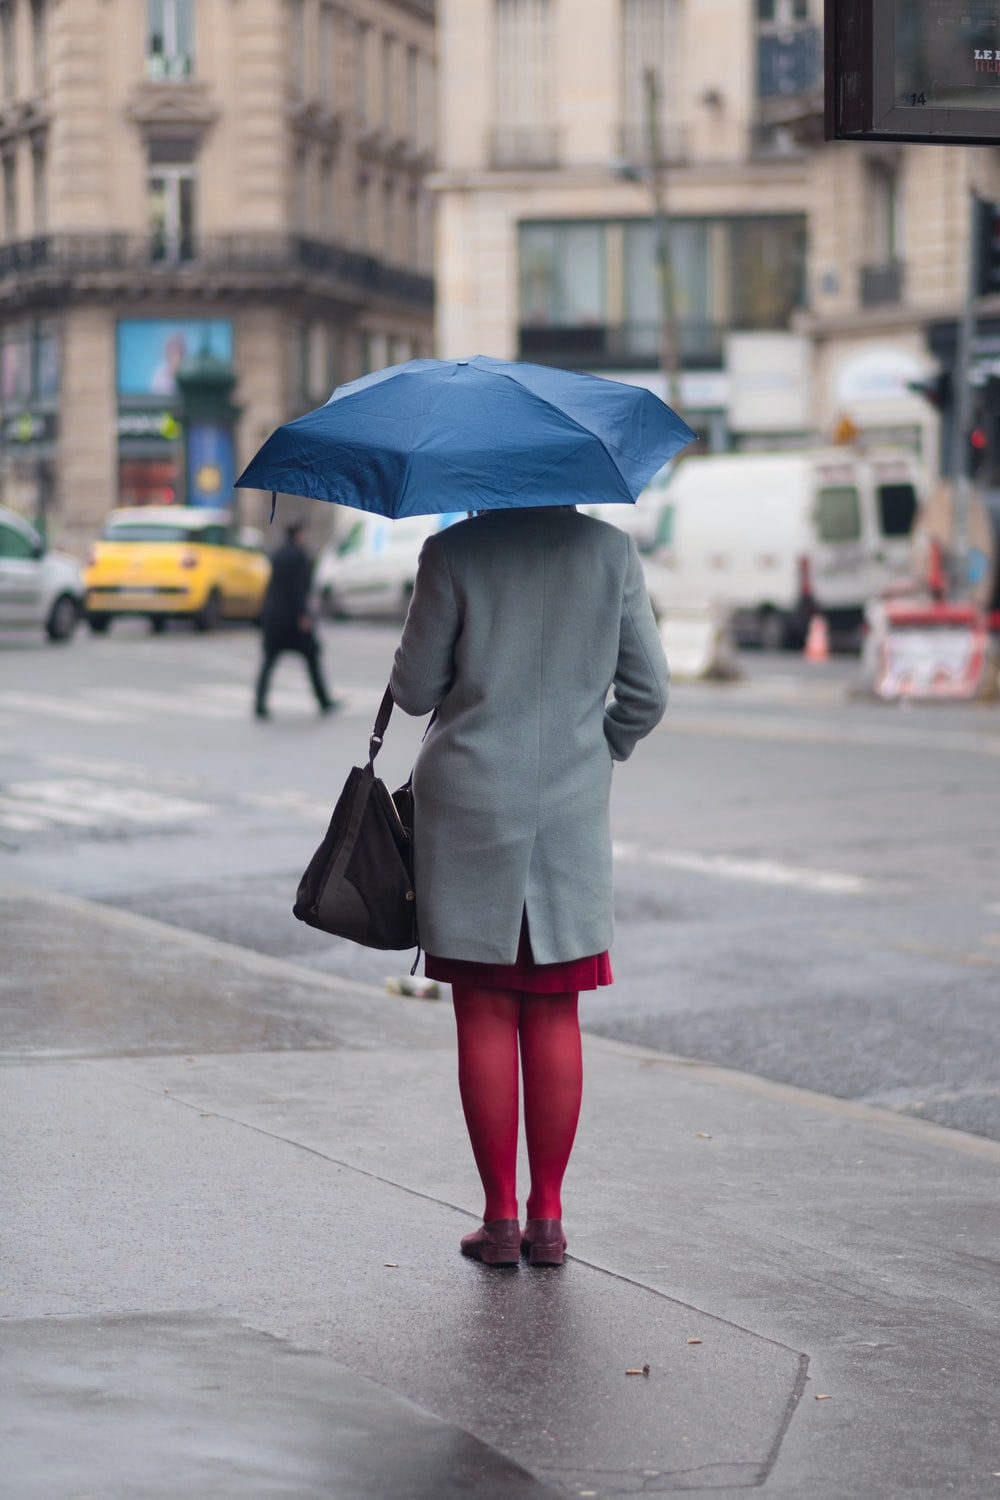 woman standing and holding umbrella